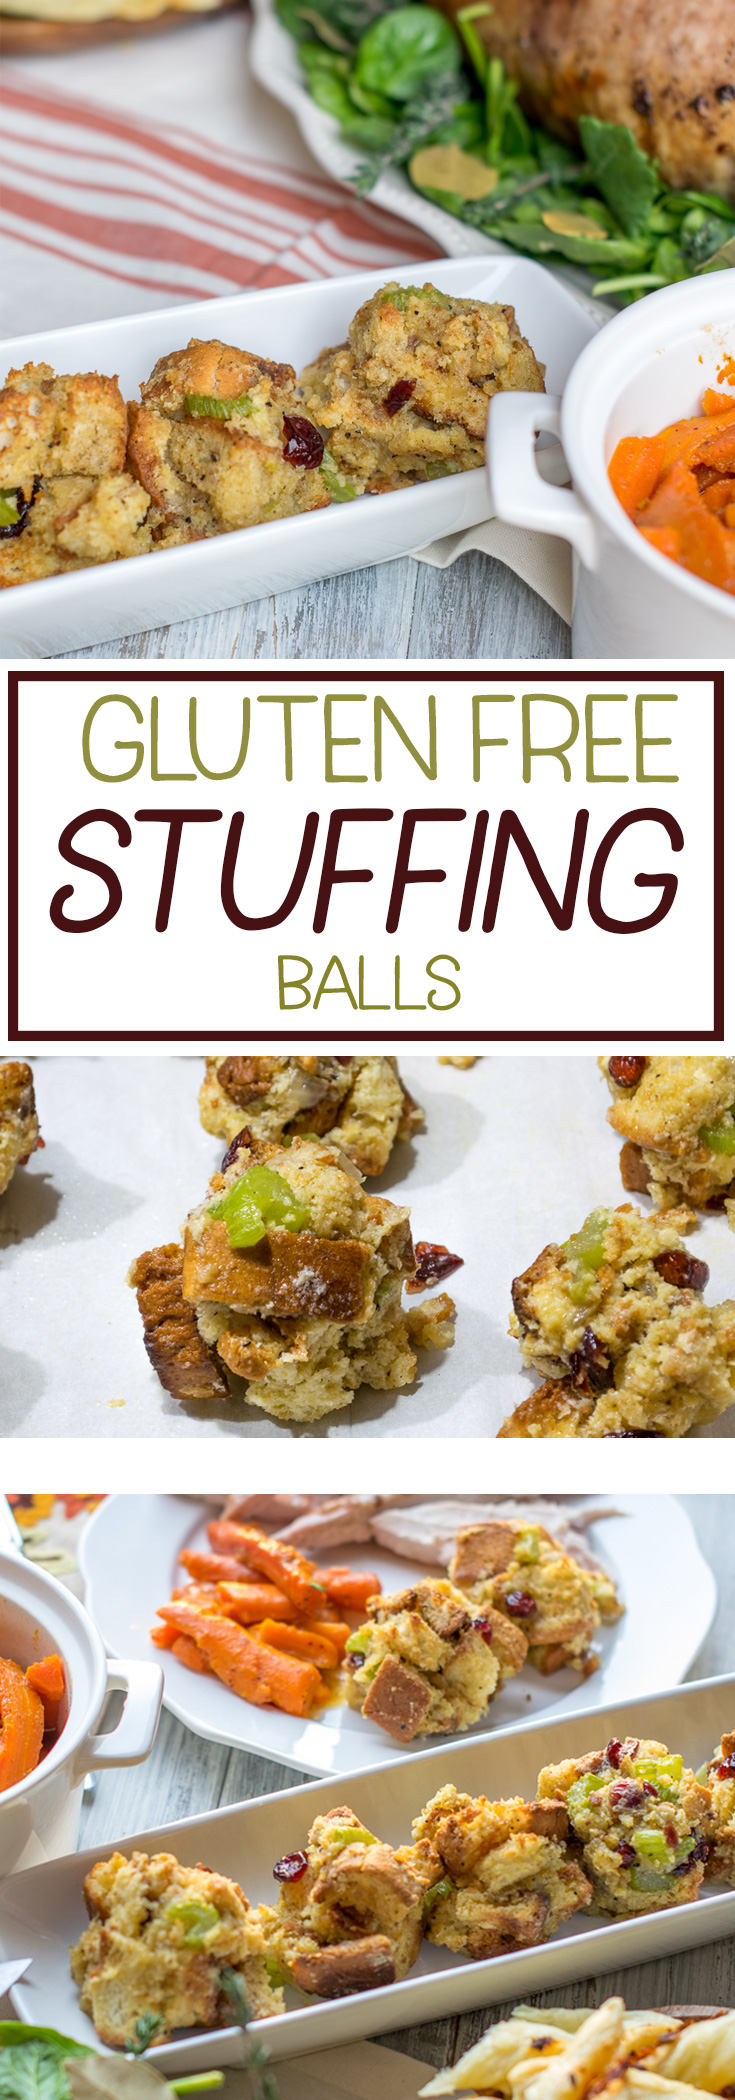 Celebrating a gluten free Thanksgiving? Enjoy gluten free stuffing balls! A traditional recipe with gluten free bread substituted, it's a family favorite! #glutenfree #glutenfreeThanksgiving #Thanksgivingrecipes #stuffing via @mrsmajorhoff